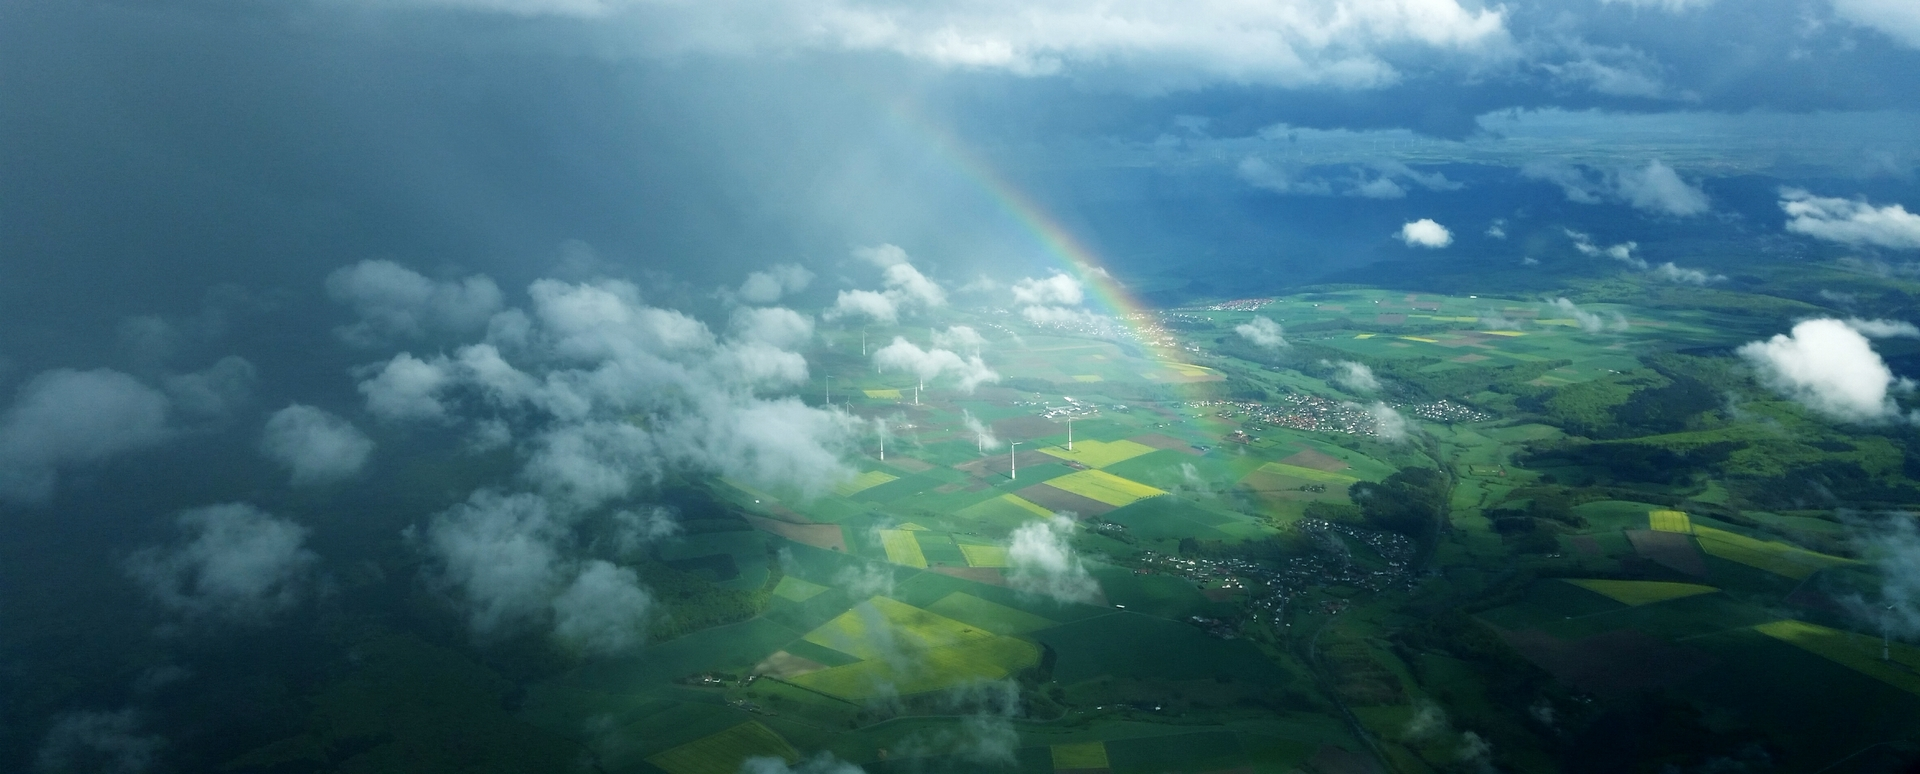 Ariel view of landscape | rainbow, farm, agriculture, cloud